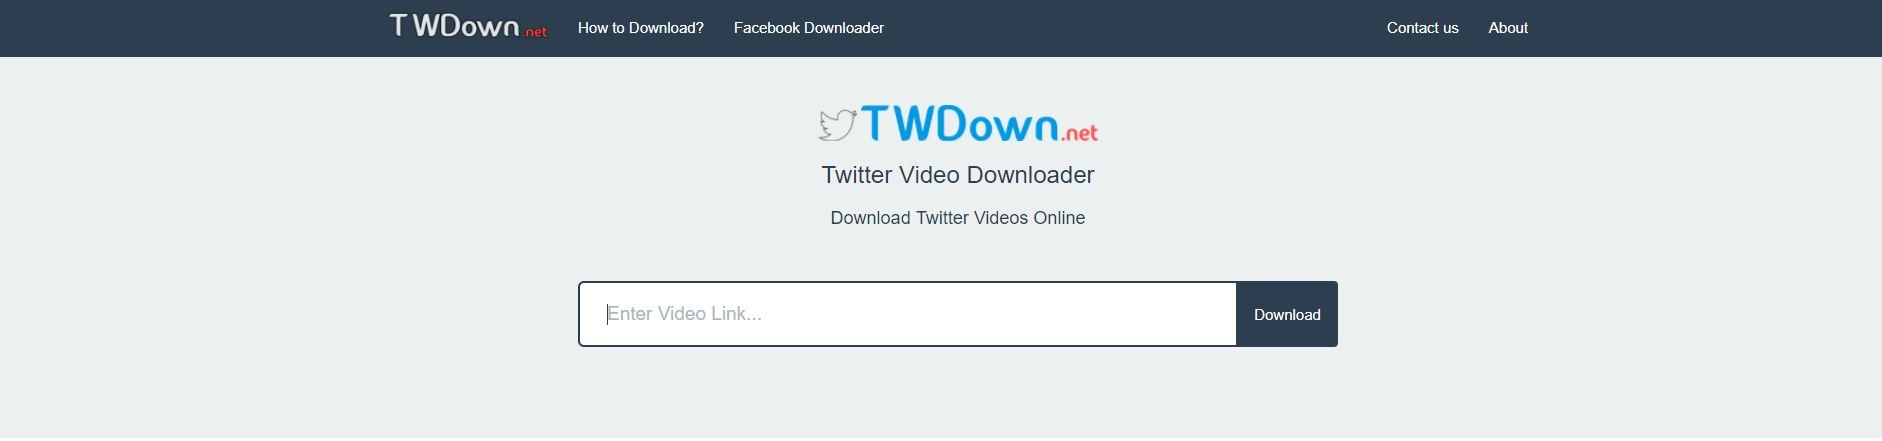 How To Download Any Video From The Internet The Complete Guide Teletype